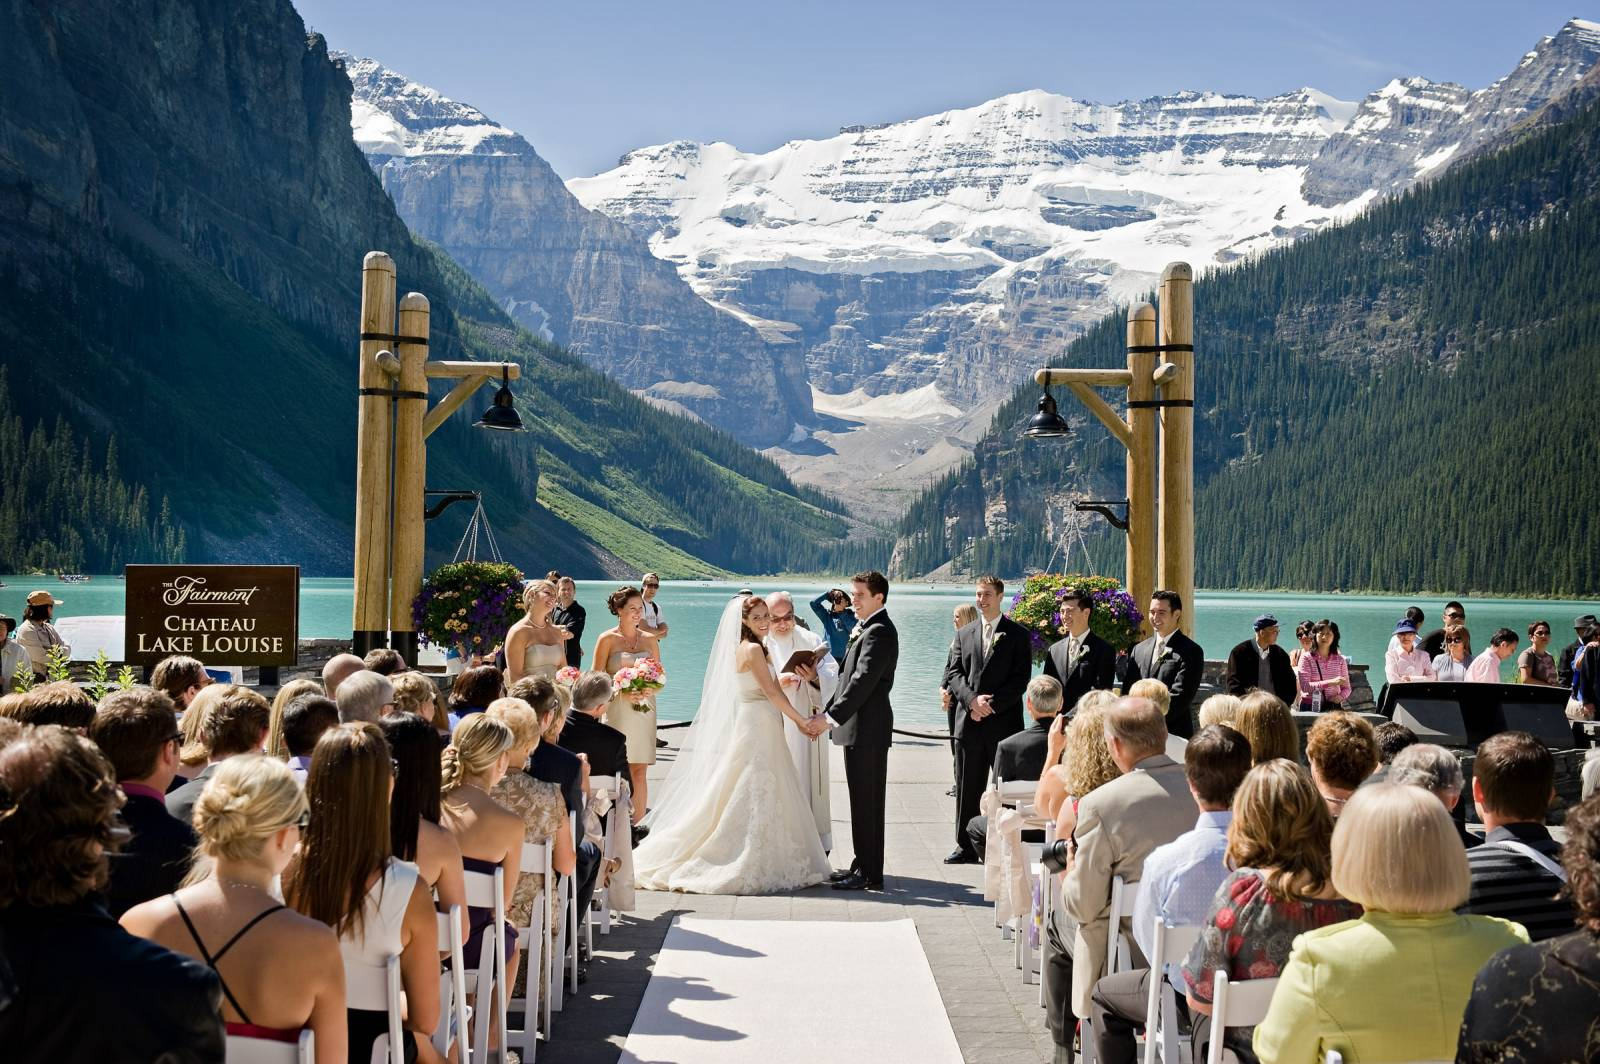 Fairmont Chateau Lake Louise Wedding Venue Lake Louise